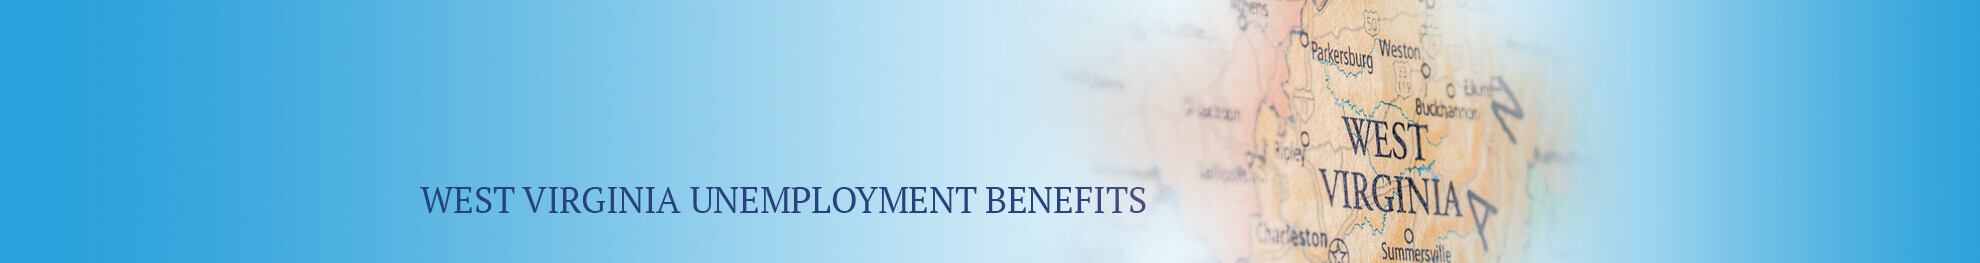 West Virginia Unemployment Benefits Eligibility Claims